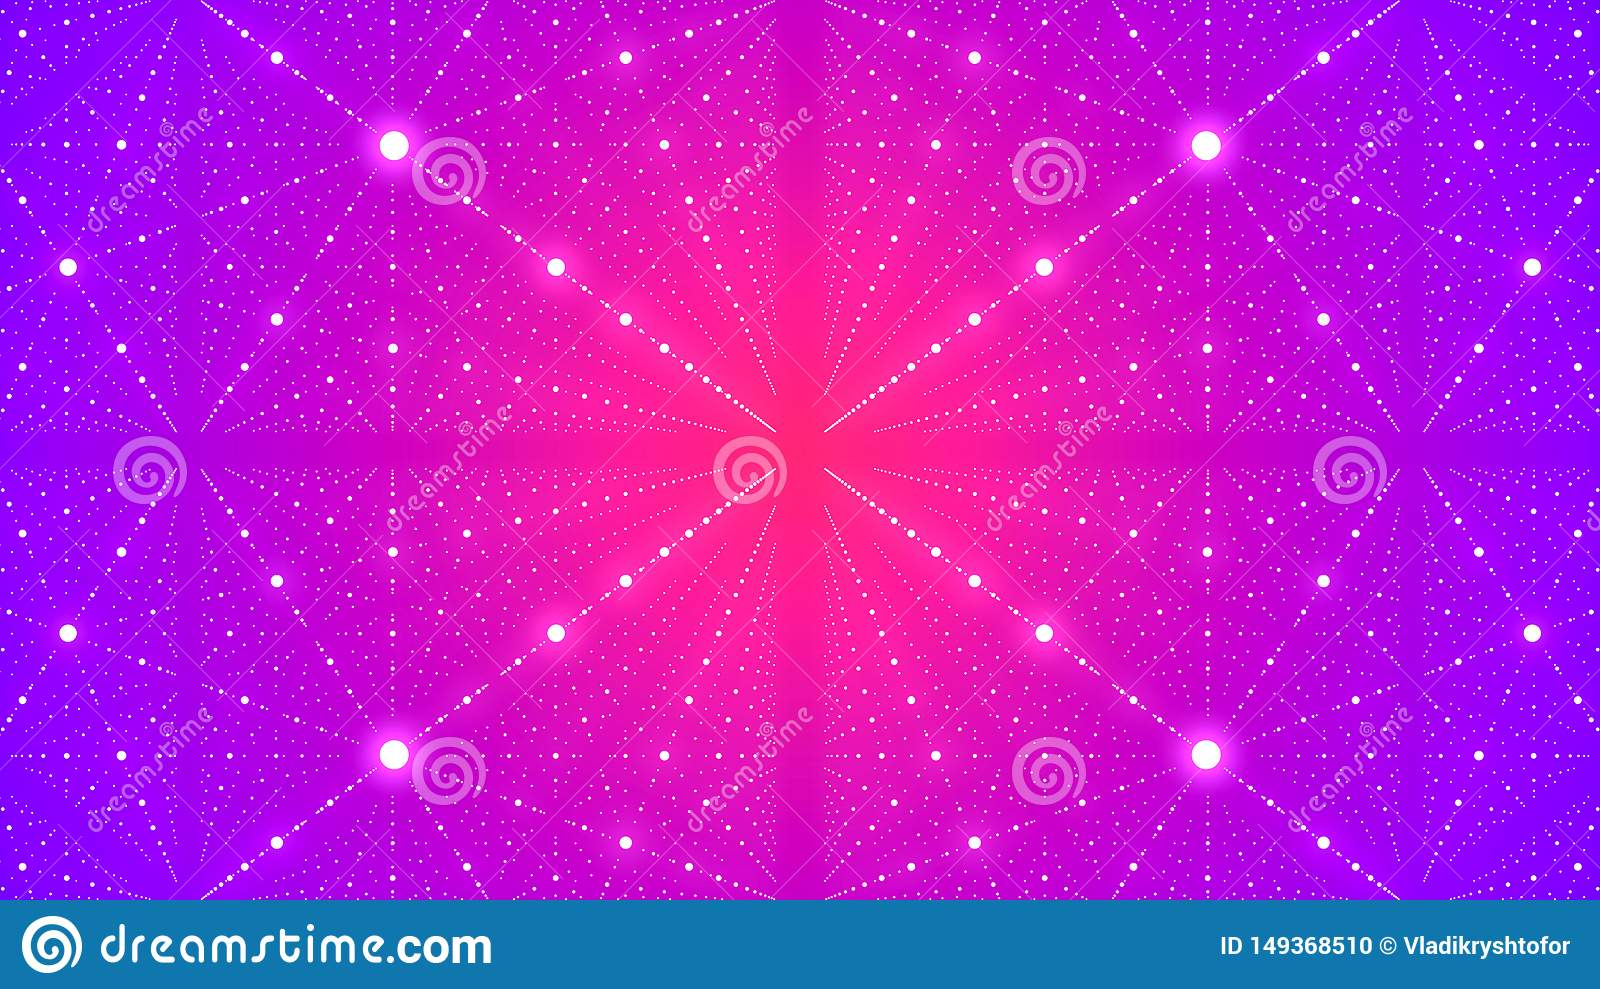 Abstract futuristic background with illusion of infinity with many dots. 3D rendering